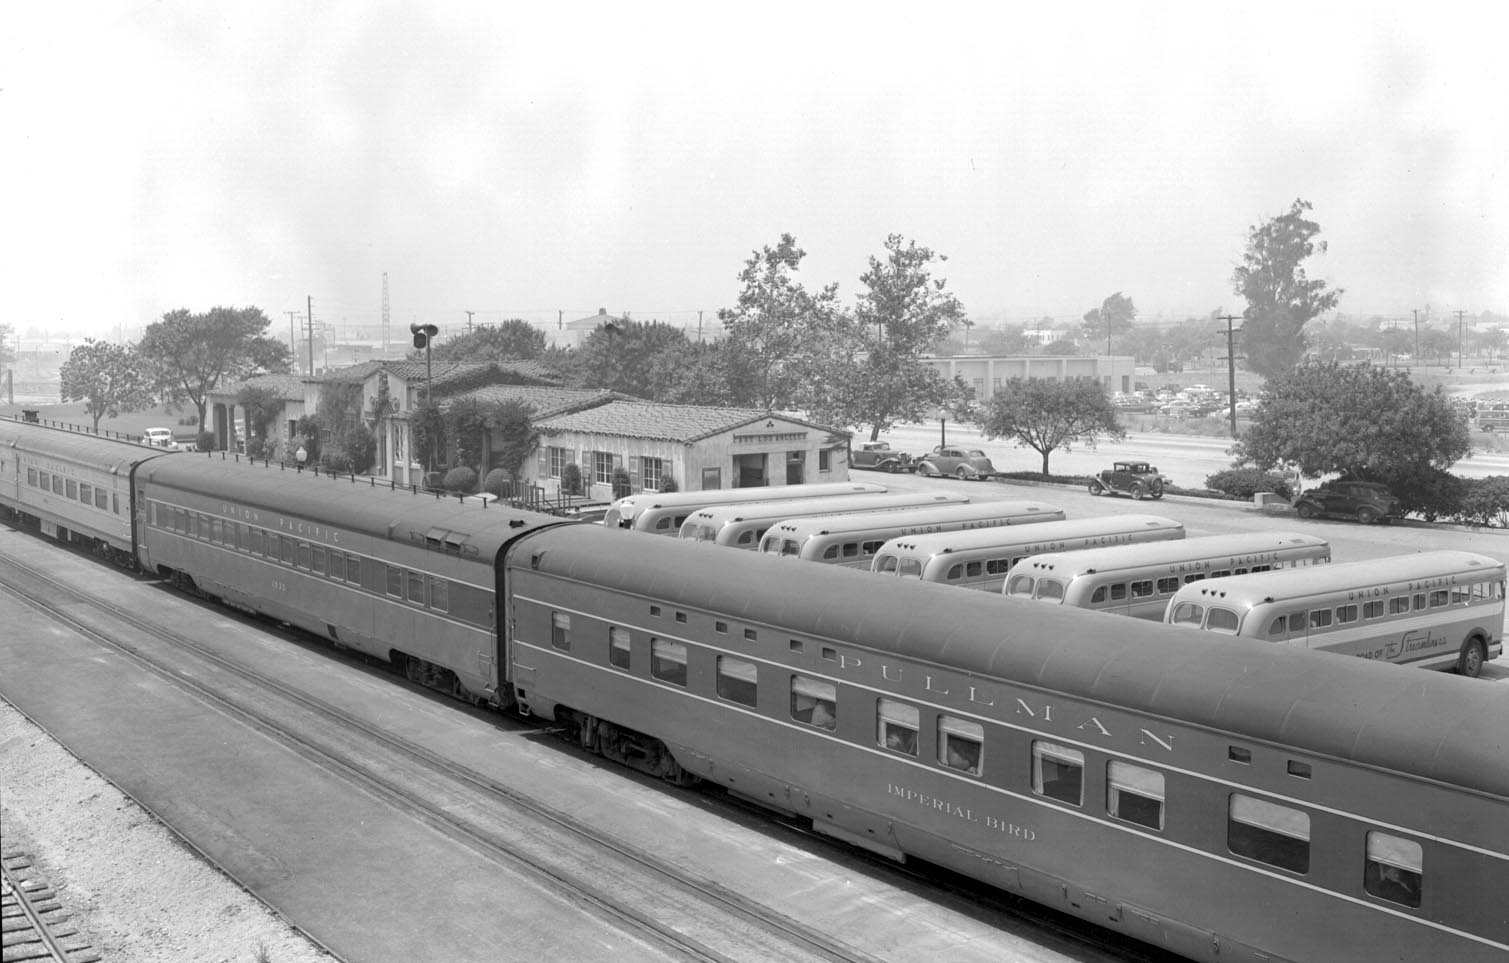 Imperial Bird shown as delivered in two tone Pullman Grey livery. Taken in 1949 at East Los Angeles.